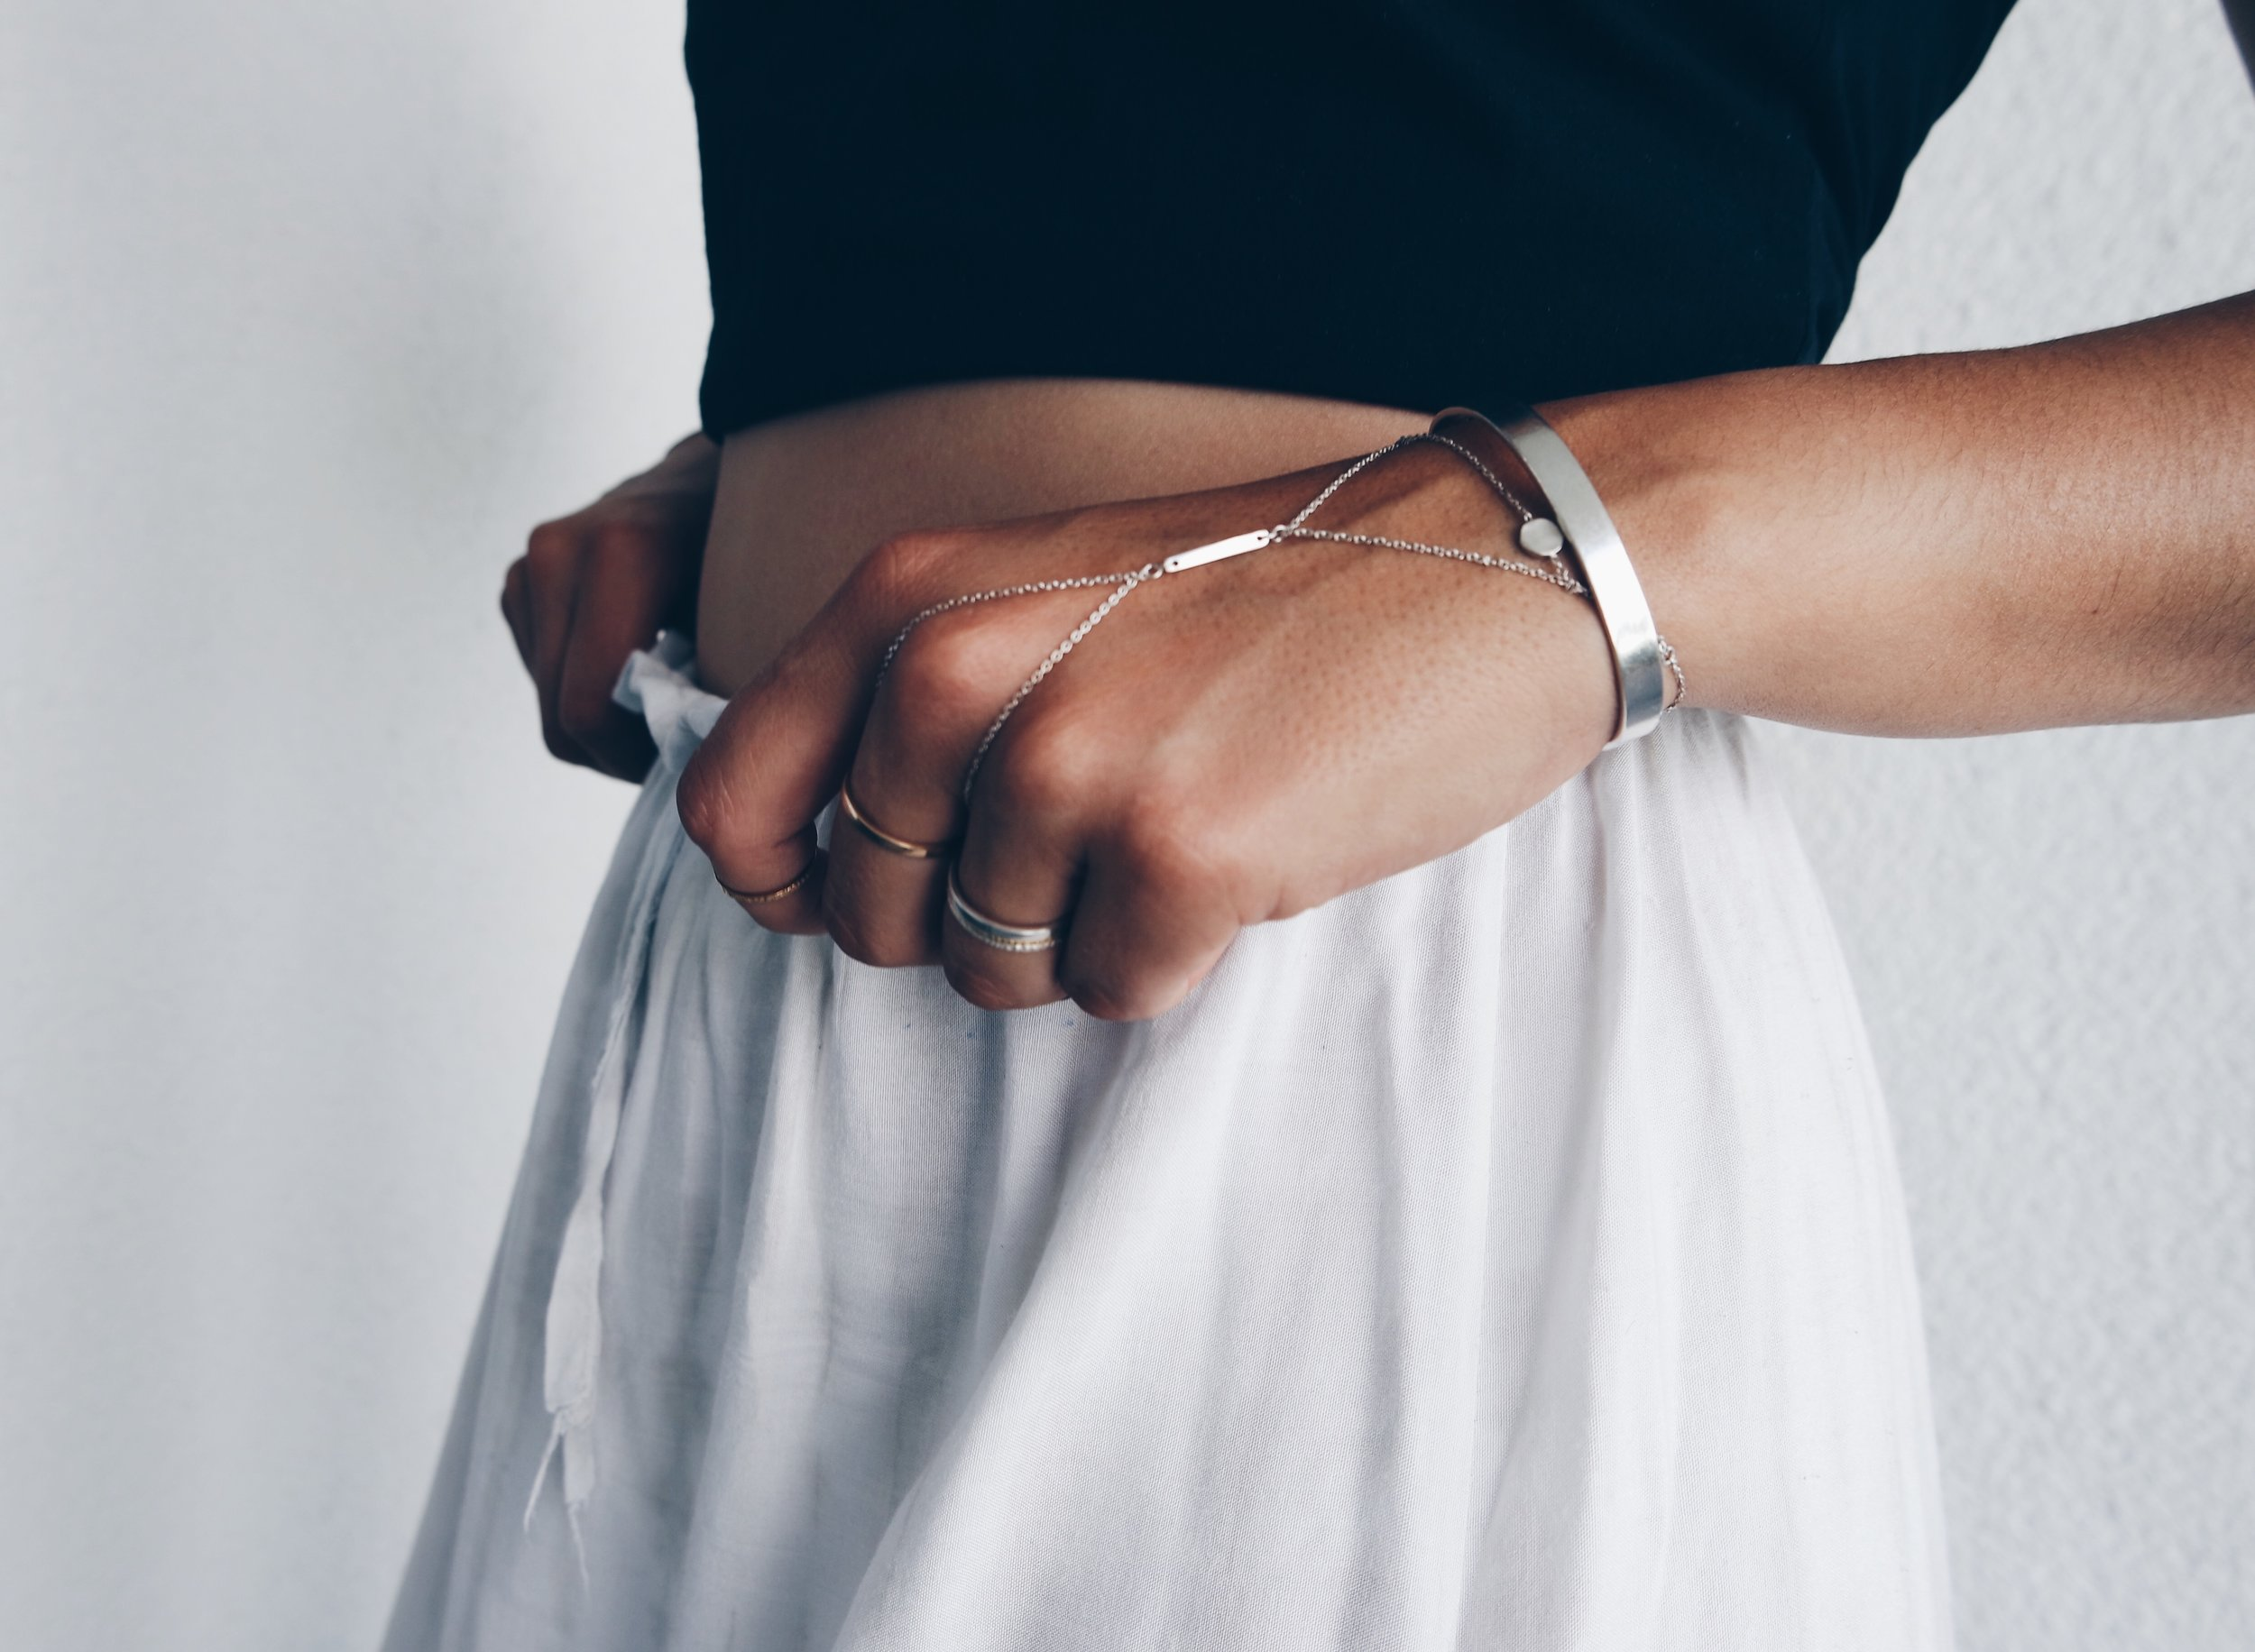 Drop handchain, Foundation bangles & rings